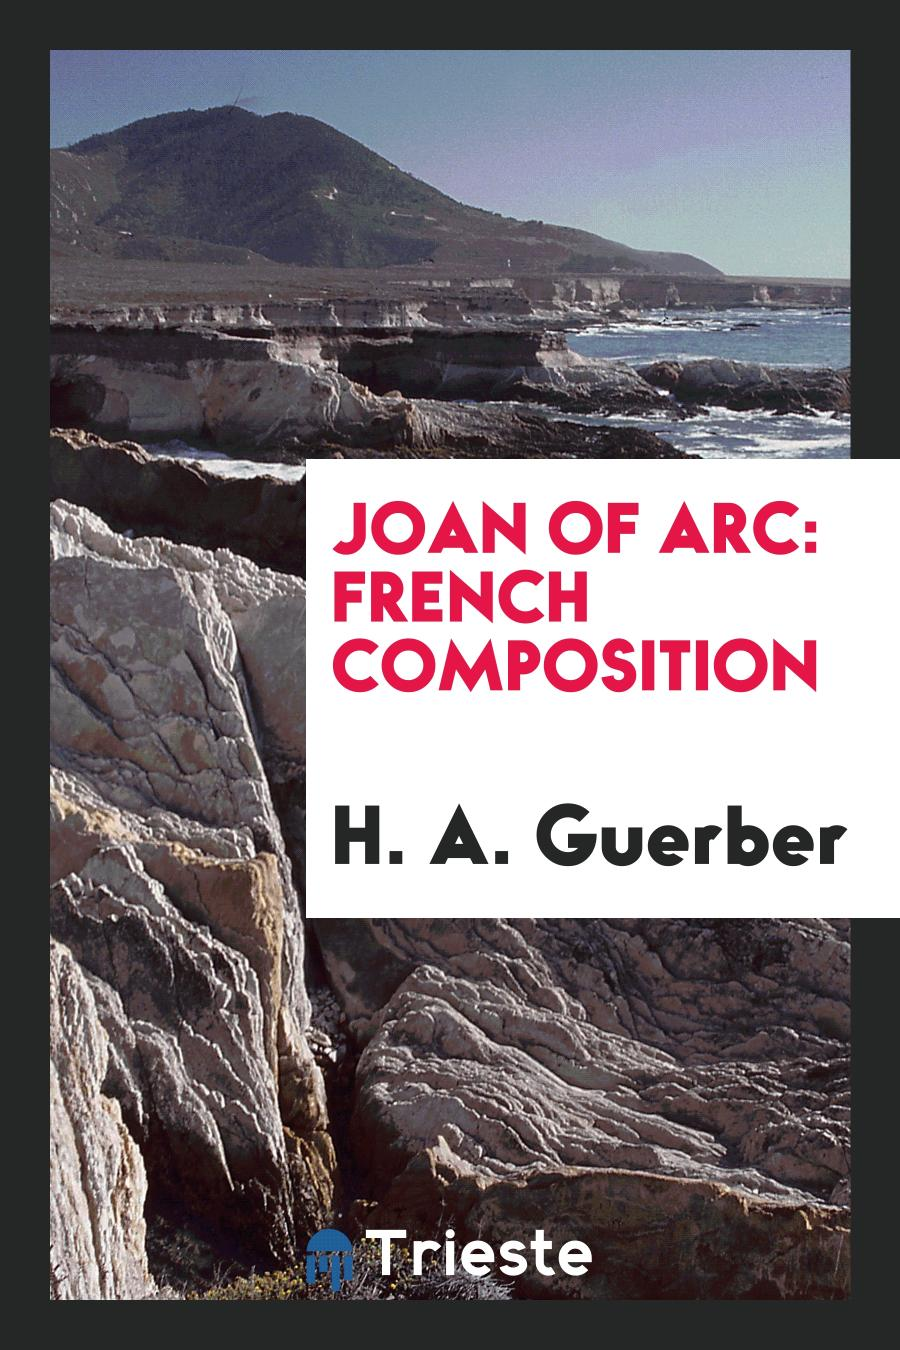 H. A. Guerber - Joan of Arc: French Composition